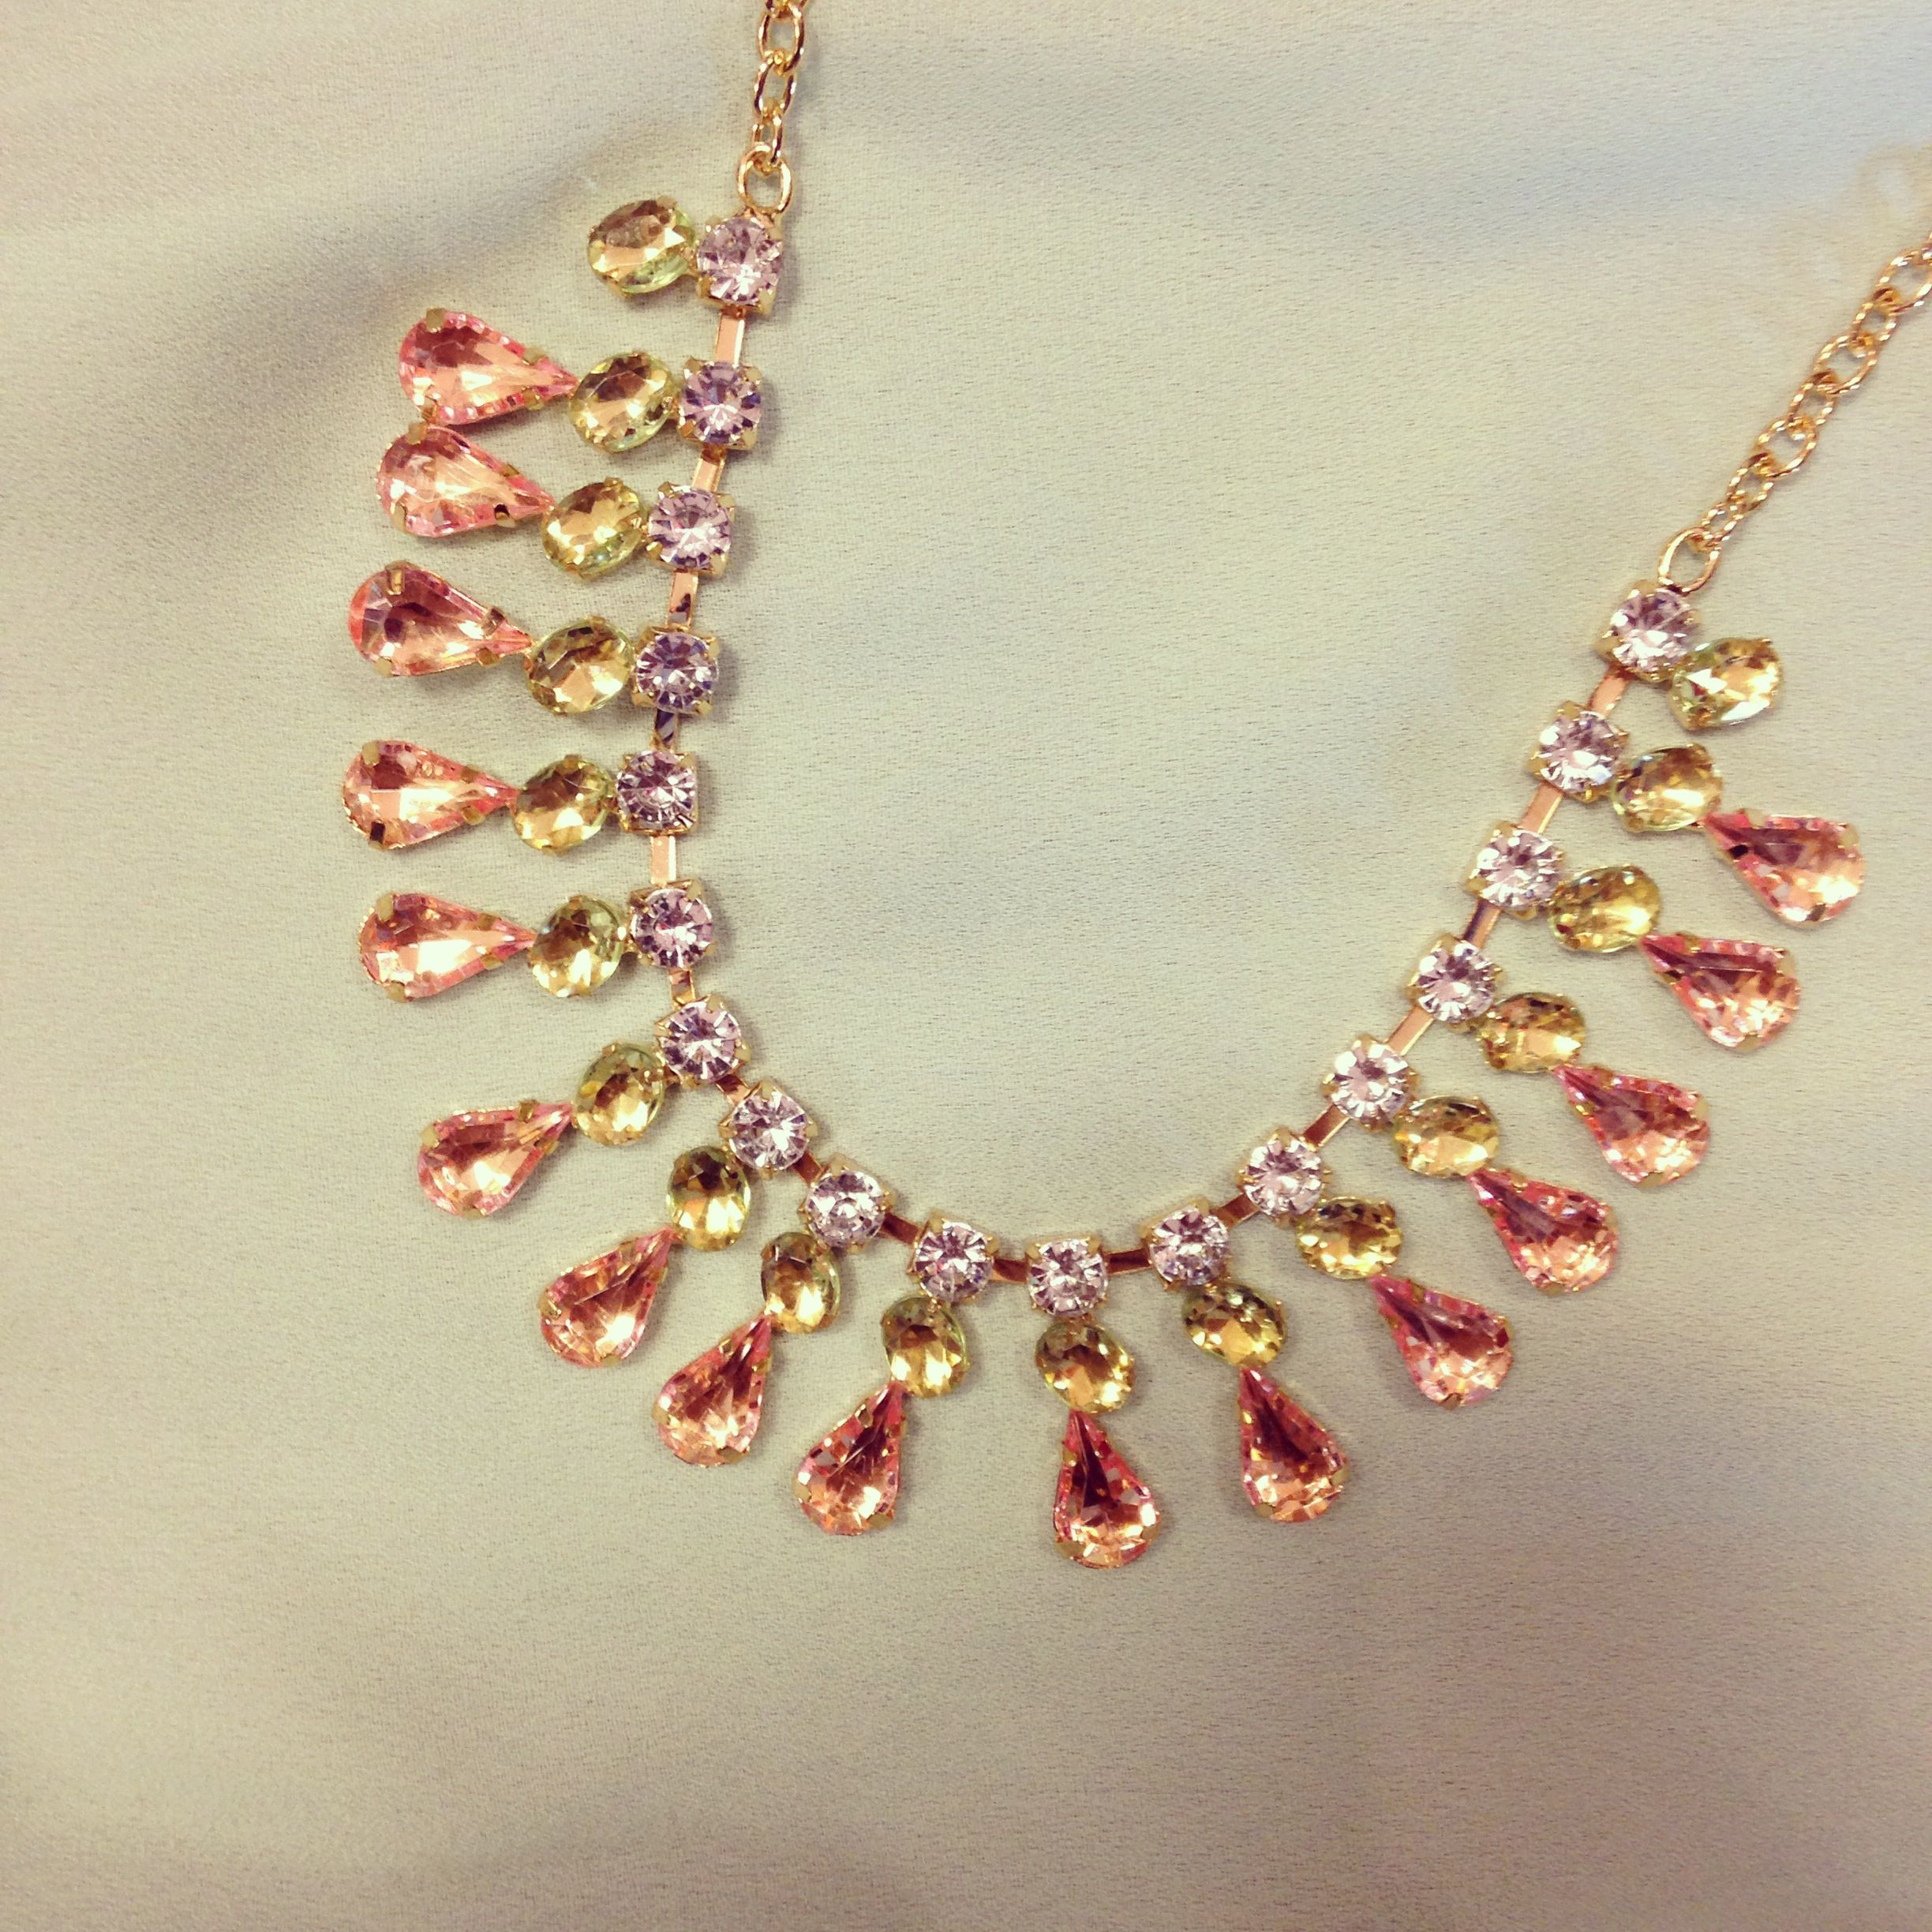 Kohls Jewelry Box Gorgeous Lighten Up Your Look With This Candie's Necklace #shine #sparkle